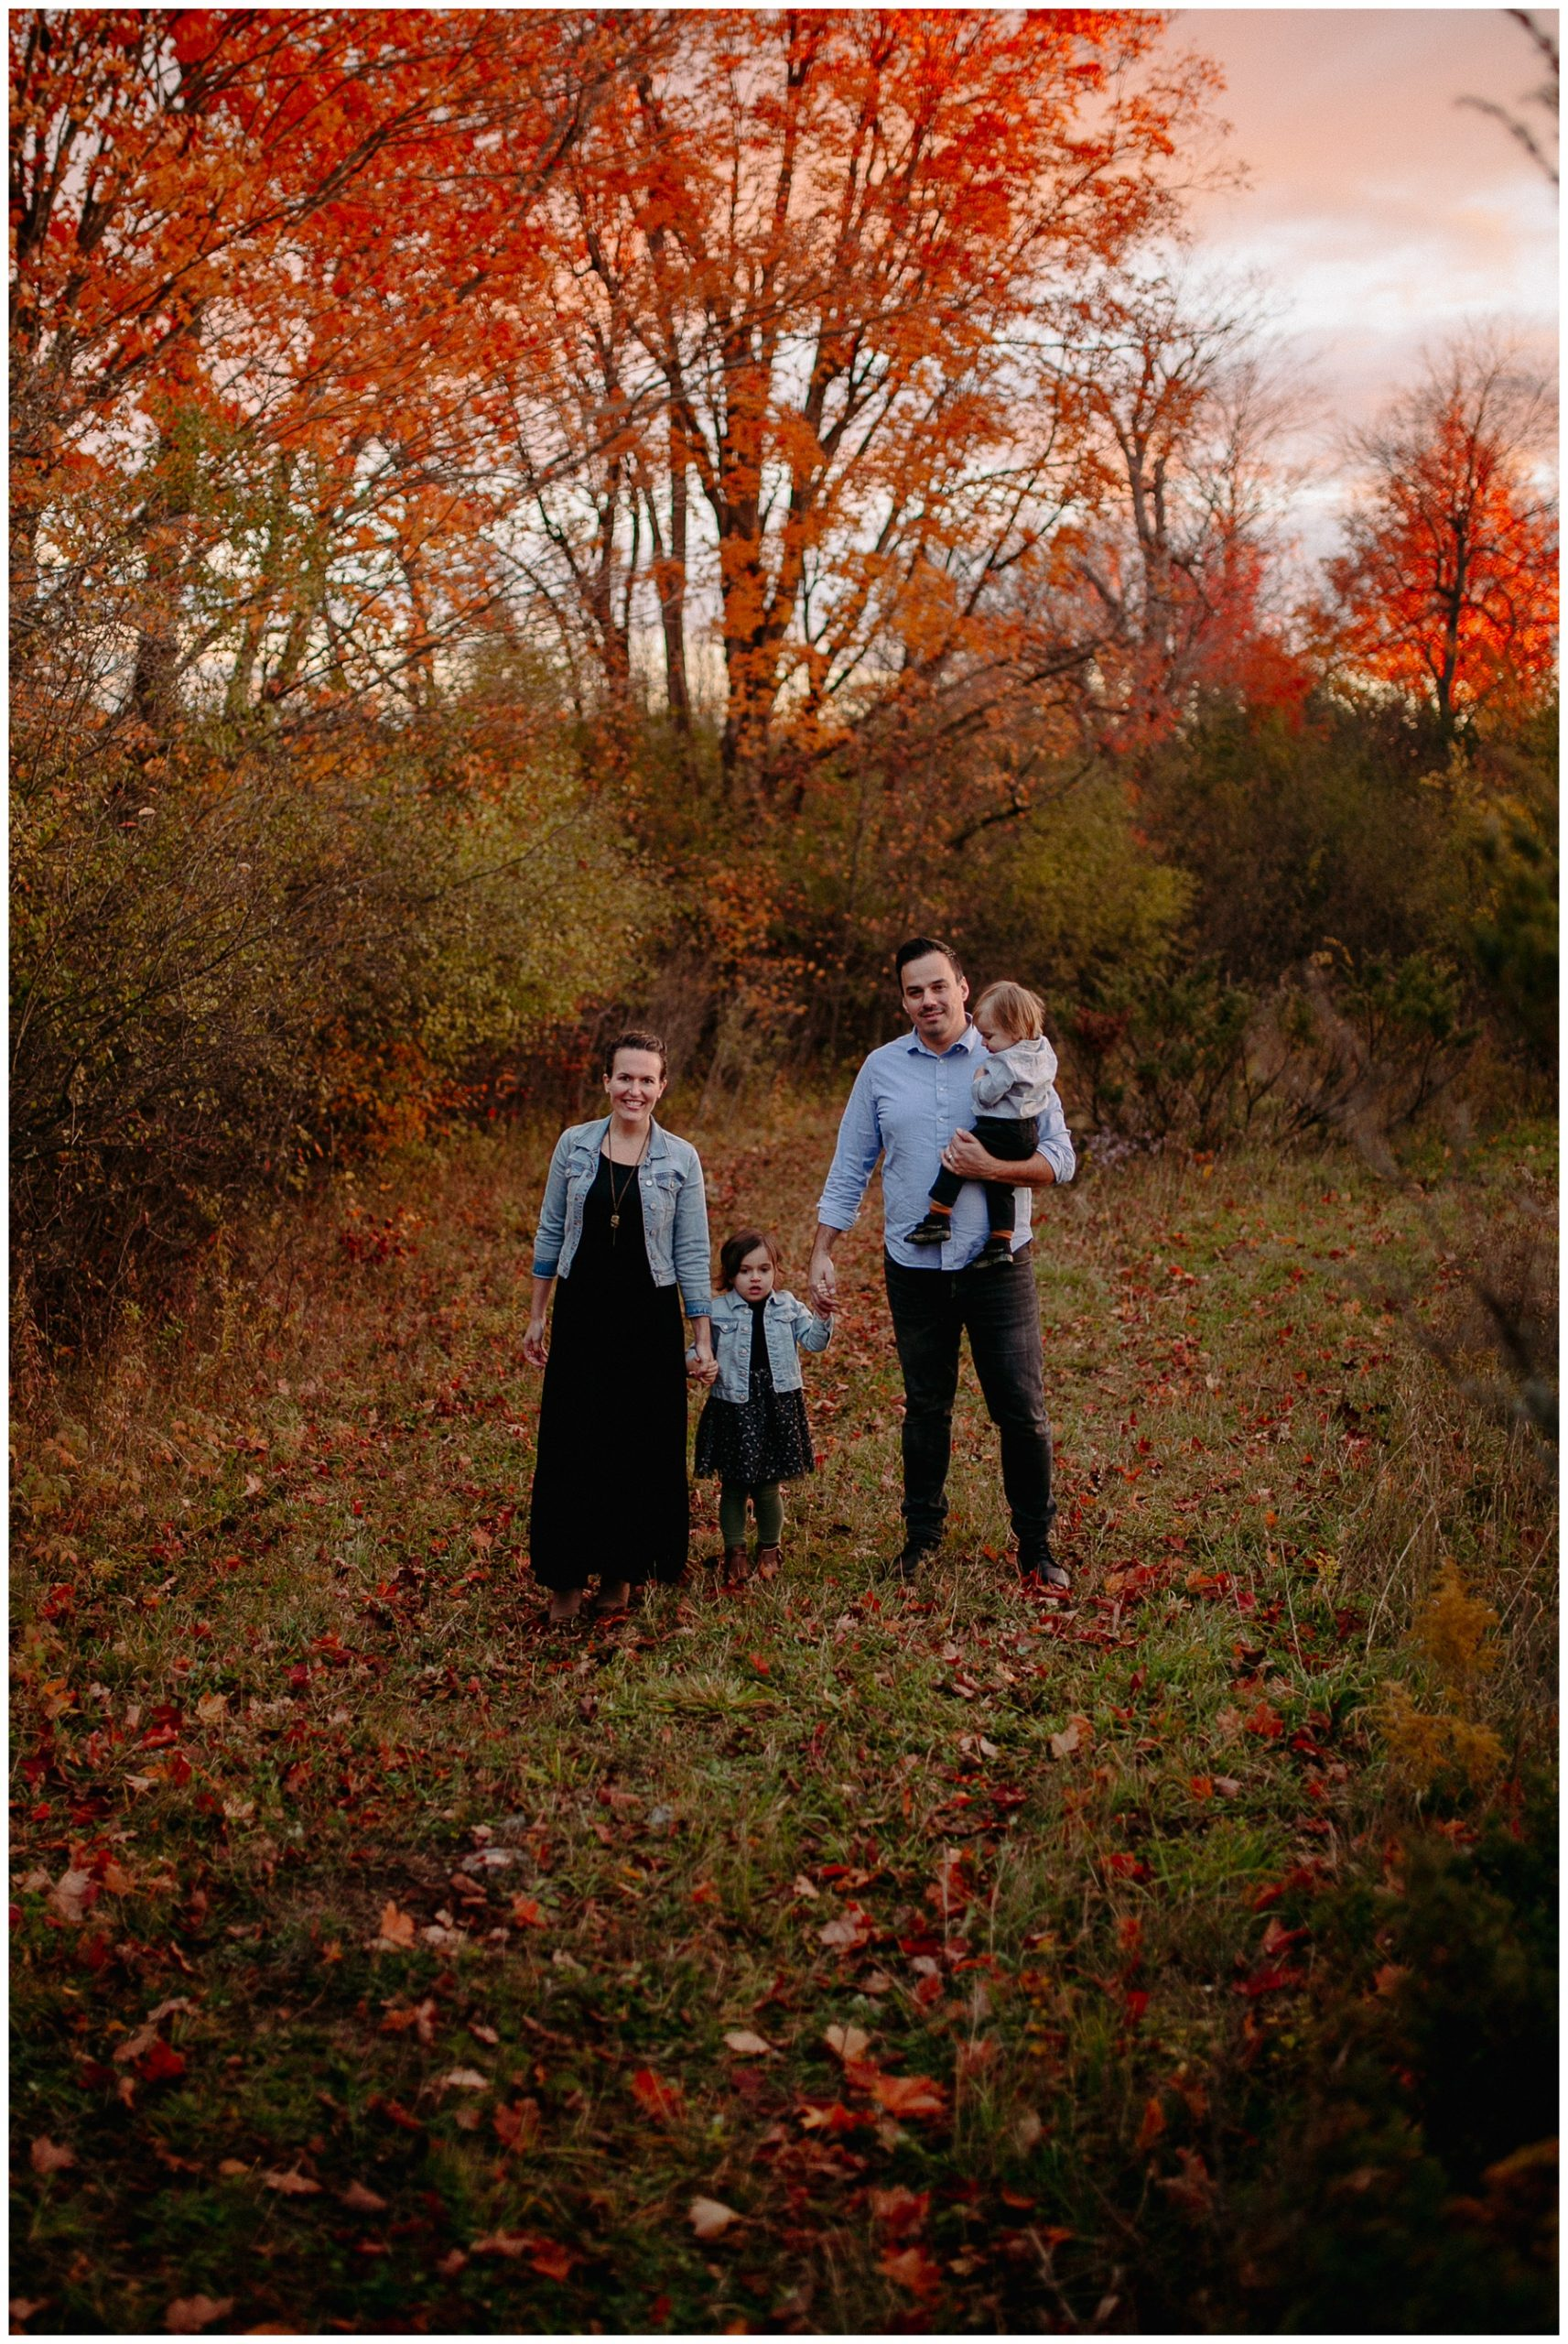 kerry ford photography - fall autumn family session perth038.jpg